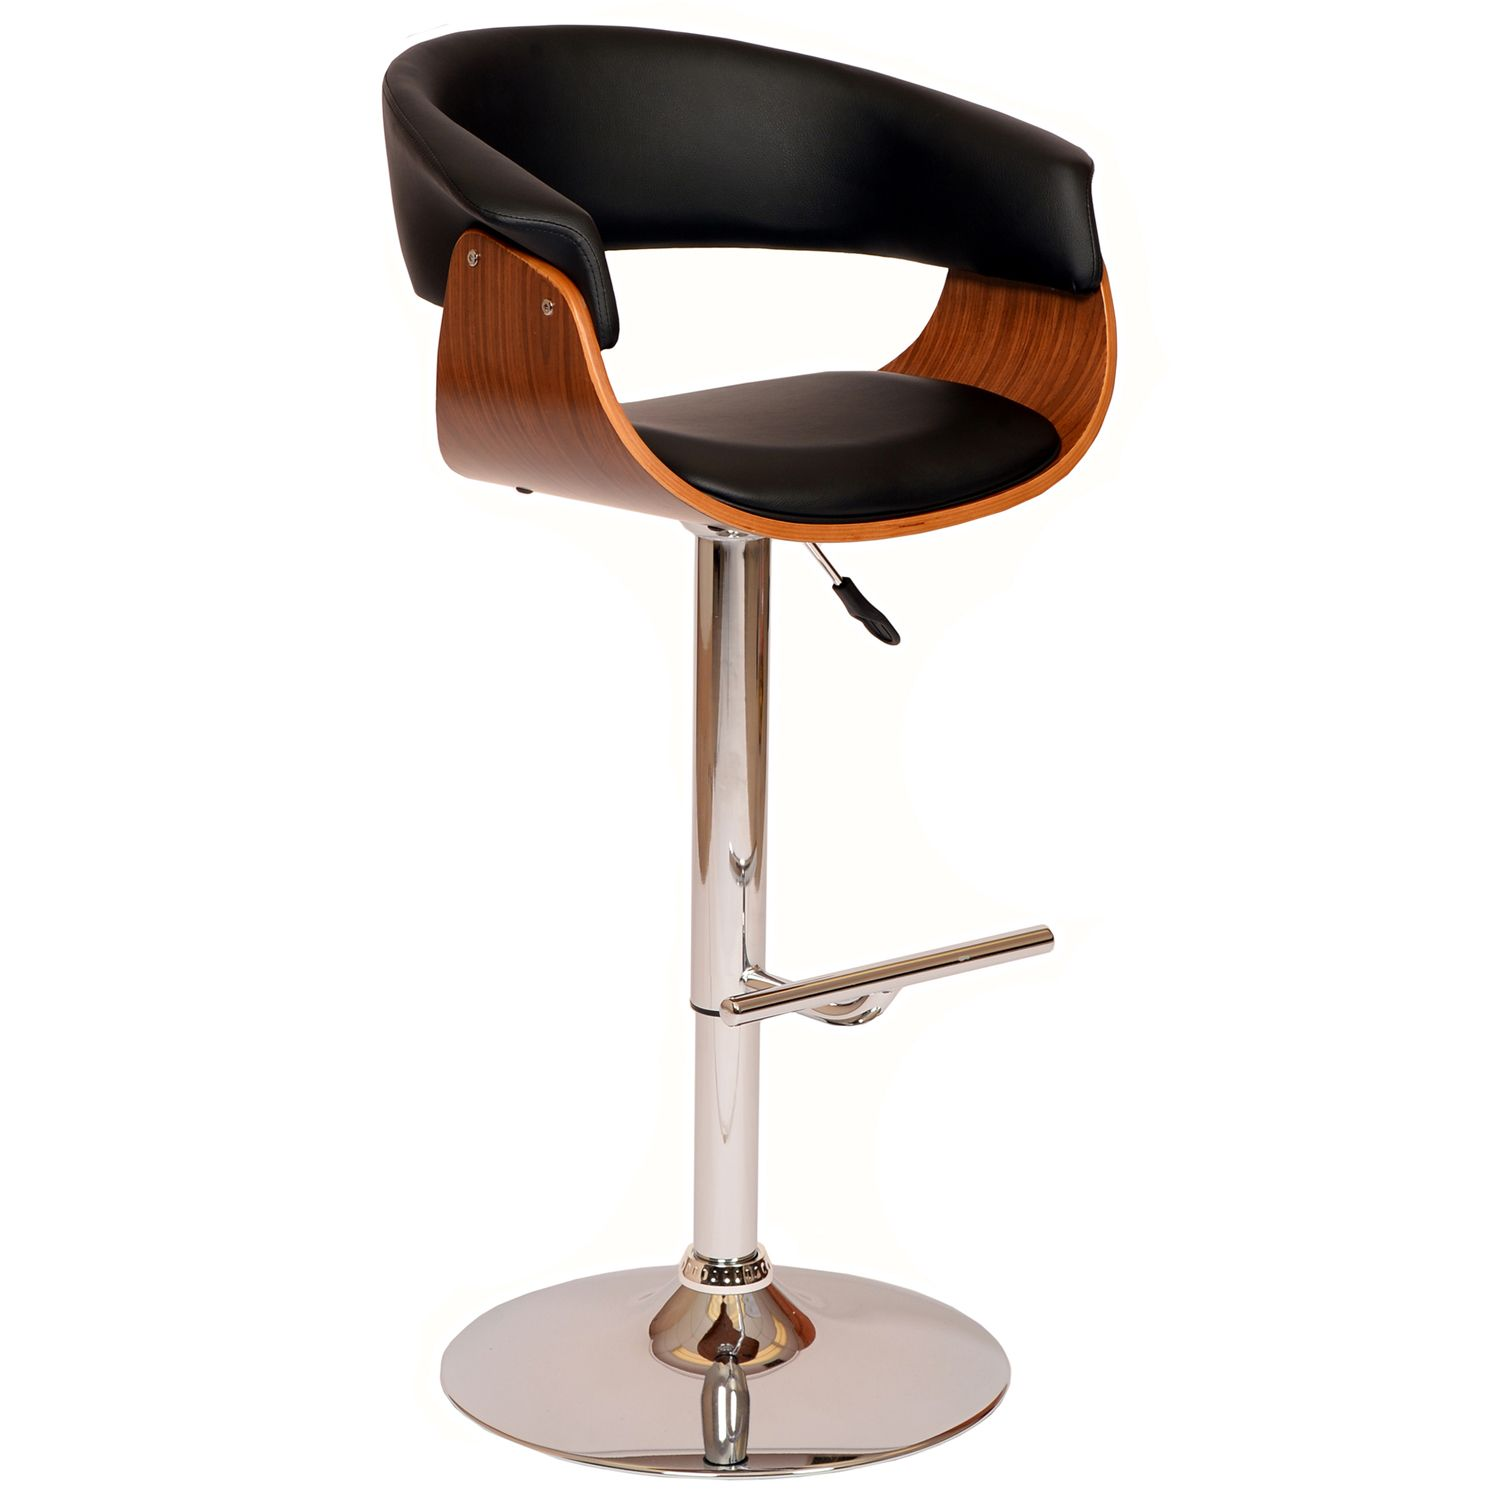 Armen Living Paris Adjustable Swivel Bar Stool